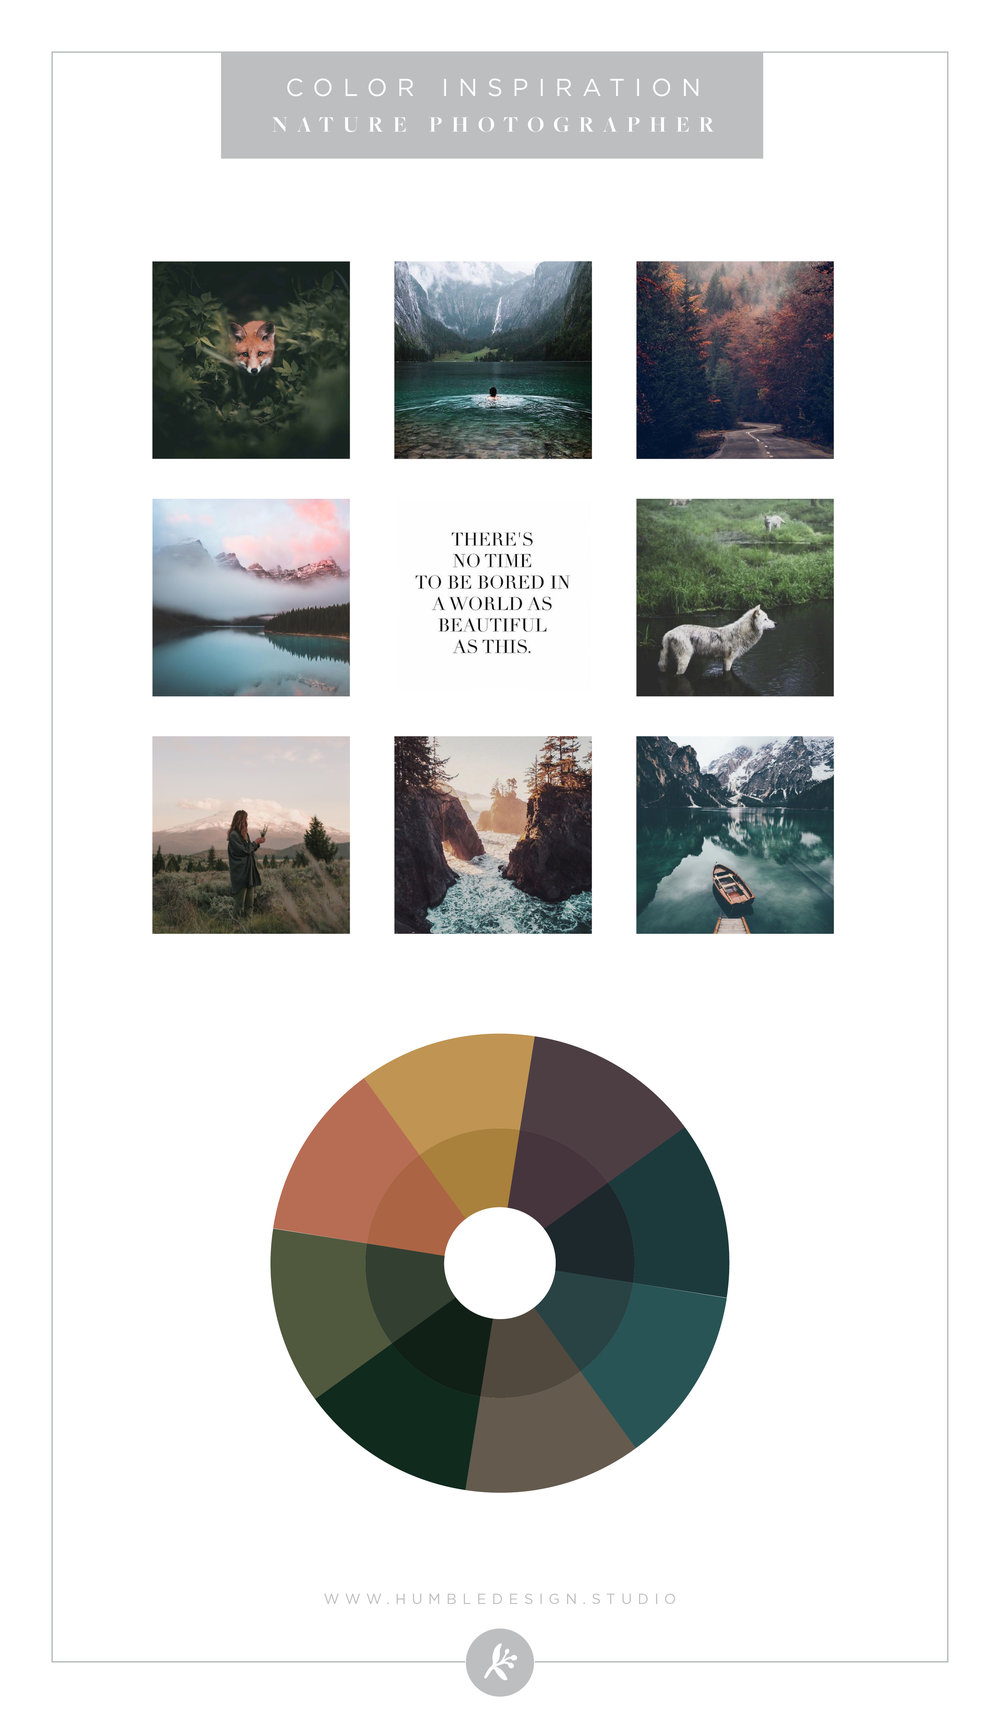 Nature Photographer Color Palette Inspiration